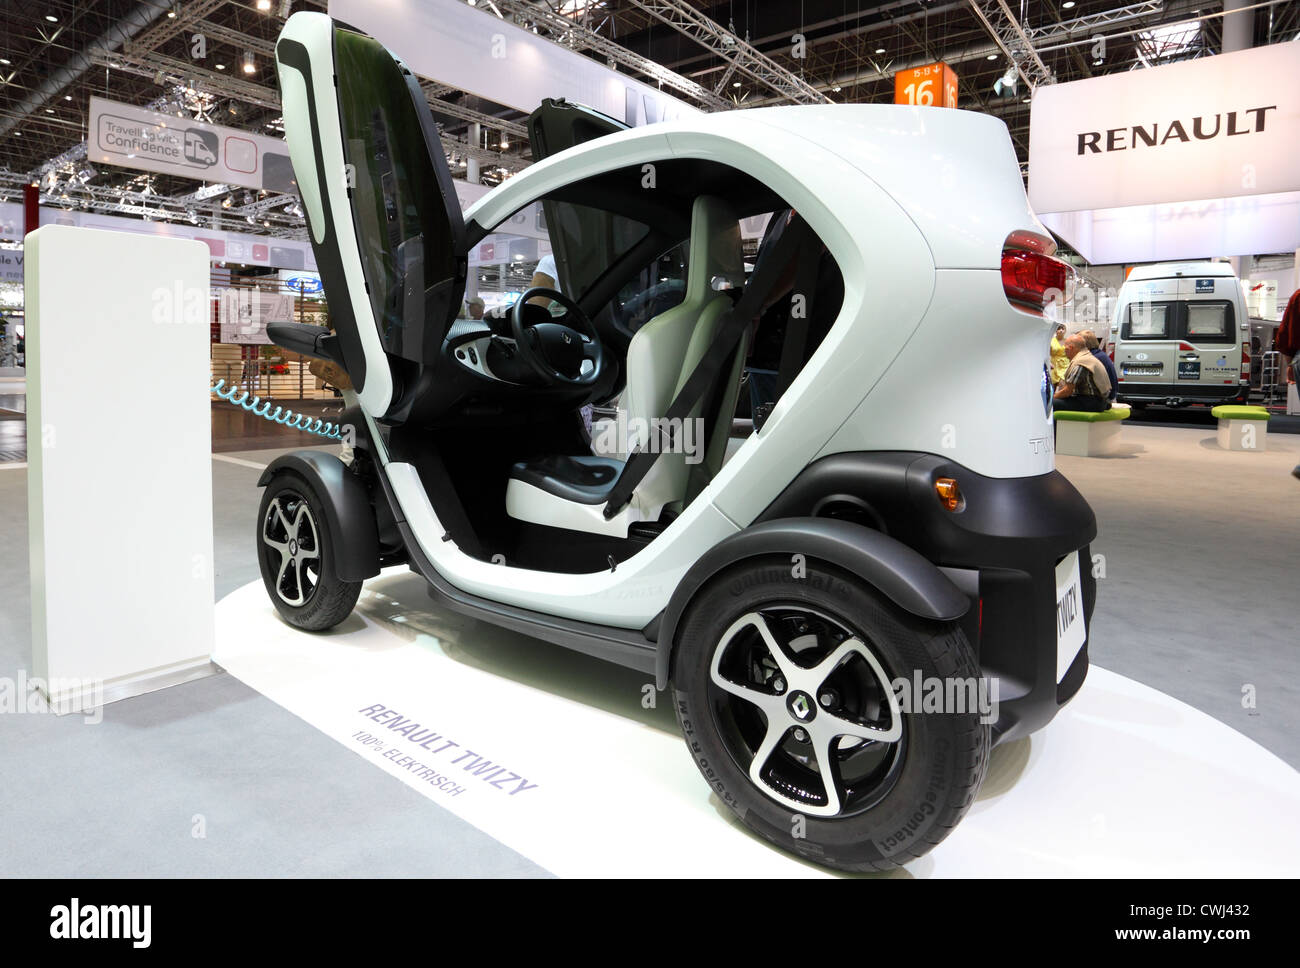 Electric car Renault Twizy at the Caravan Salon Exhibition 2012 on August 27, 2012 in Dusseldorf, Germany Stock Photo